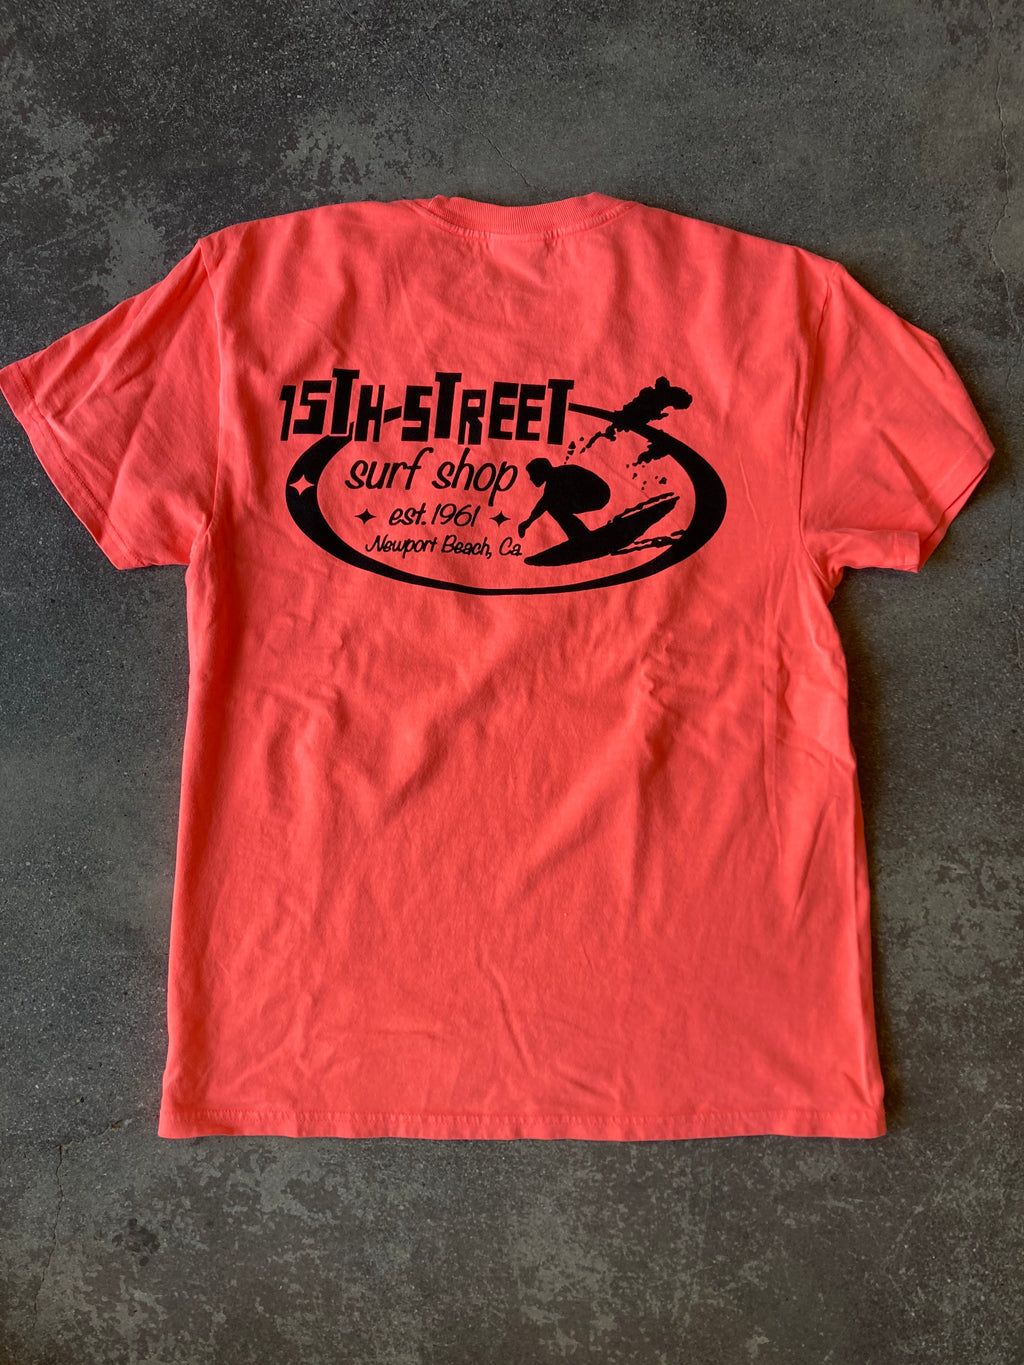 15th St Men's Since 1961 Short Sleeve T-Shirt NEON 80'S PINK